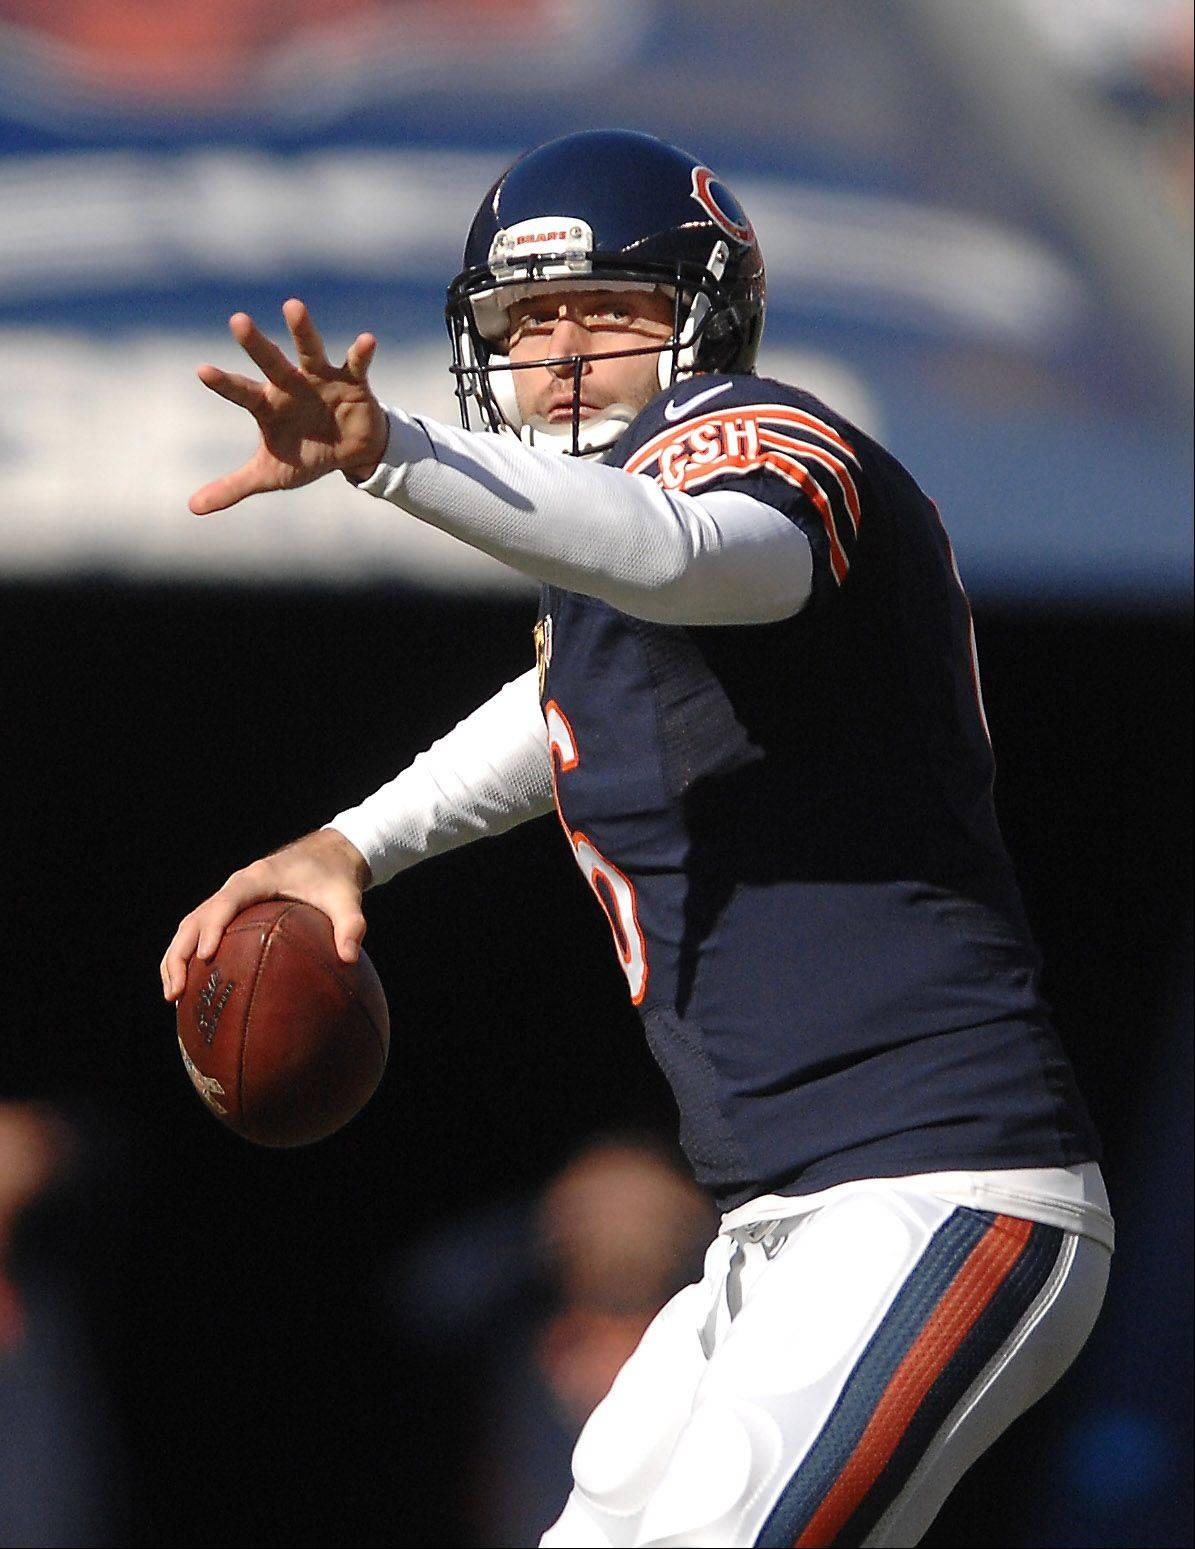 Chicago Bears quarterback Jay Cutler (6) fires a strike to Brandon Marshall for a touchdown on his first series back after injury against Detroit during Sunday's game in Chicago.